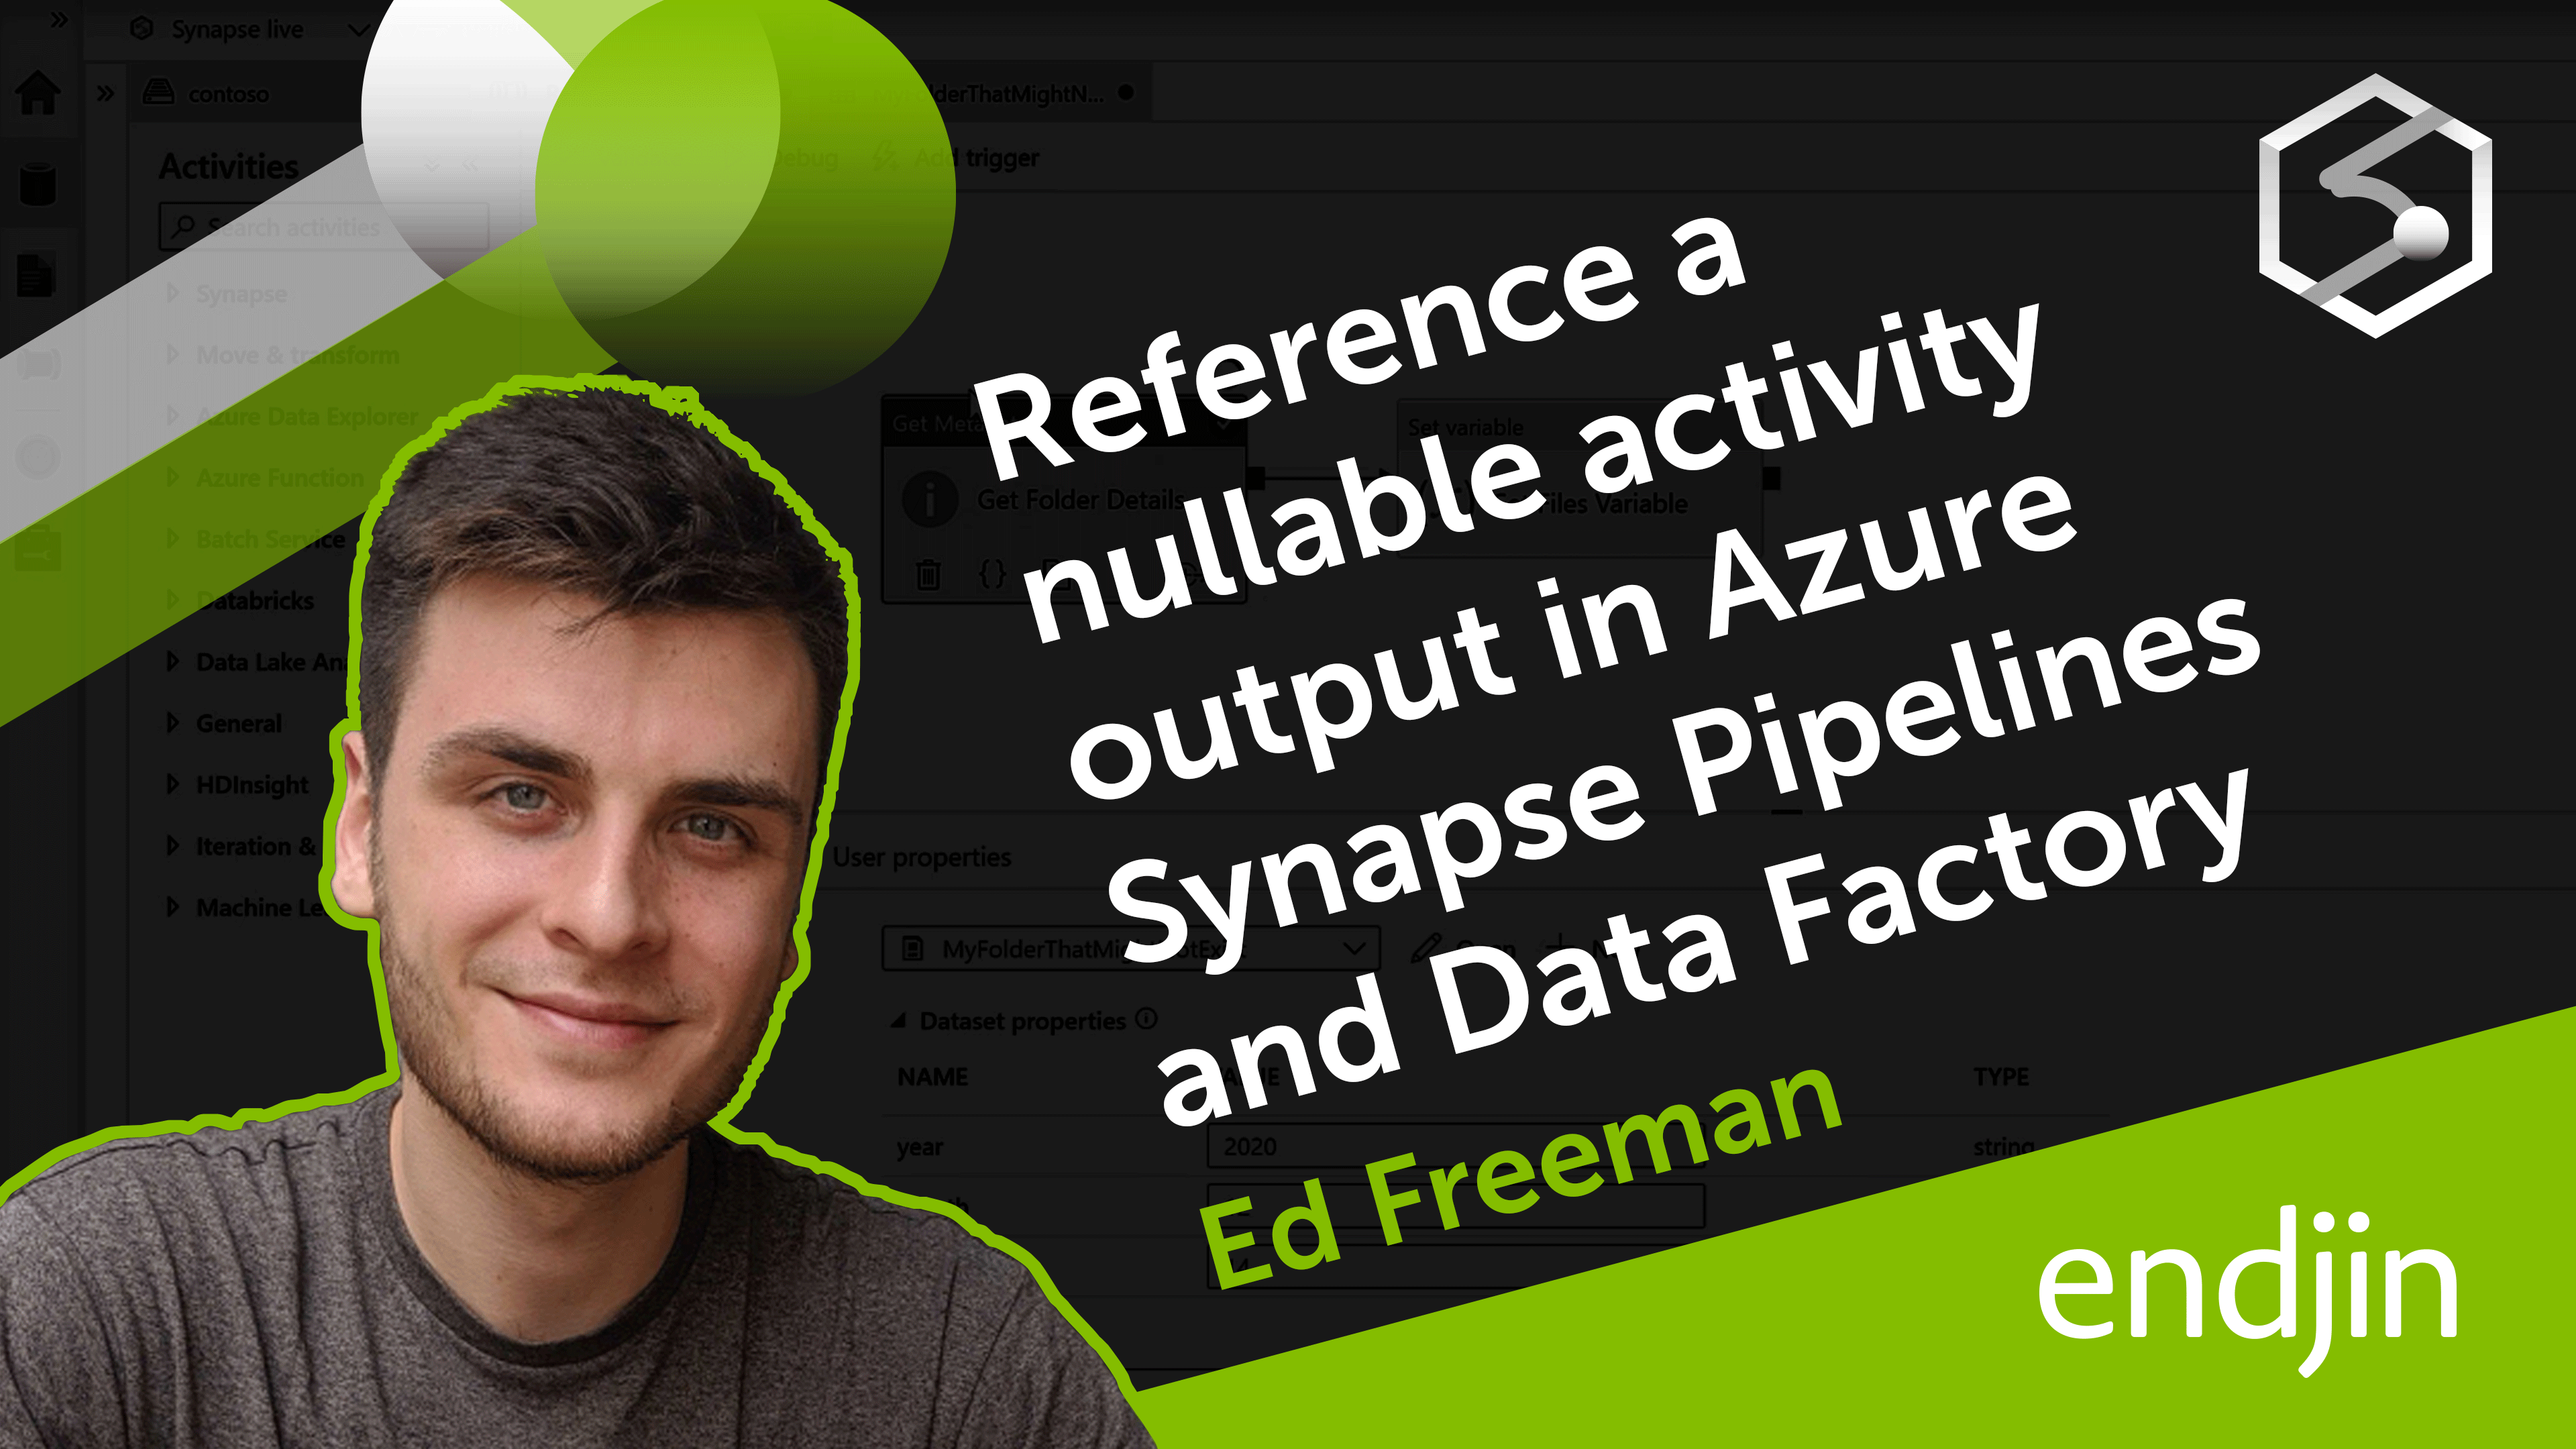 How to safely reference a nullable activity output in Azure Synapse Pipelines and Azure Data Factory